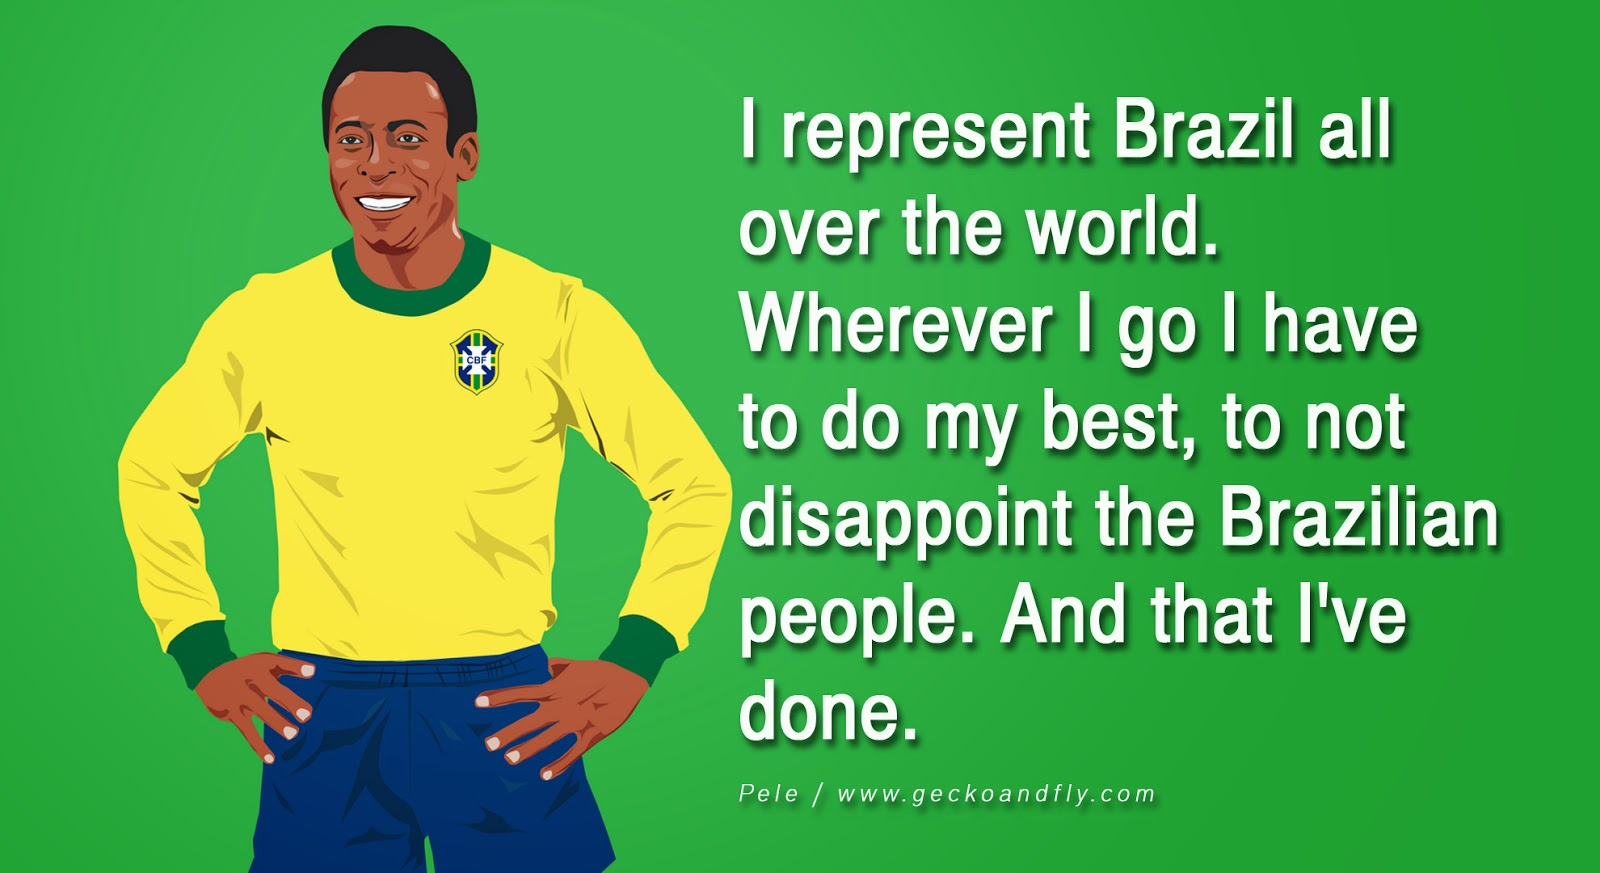 12 Inspiring Quotes from Pele the Greatest Football Legend